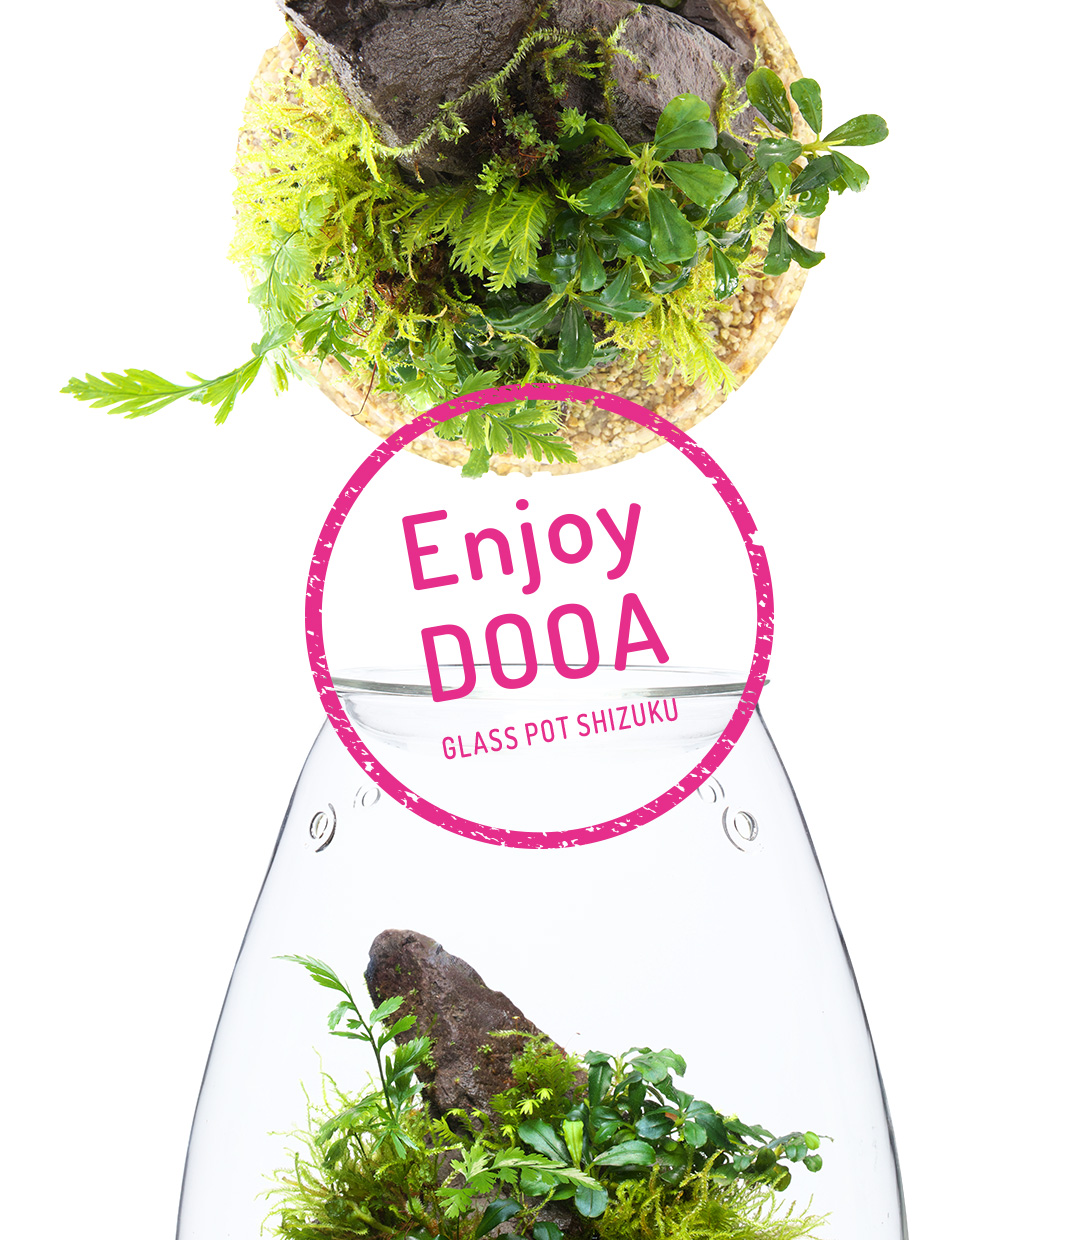 Enjoy DOOA「GLASS POT SHIZUKU」